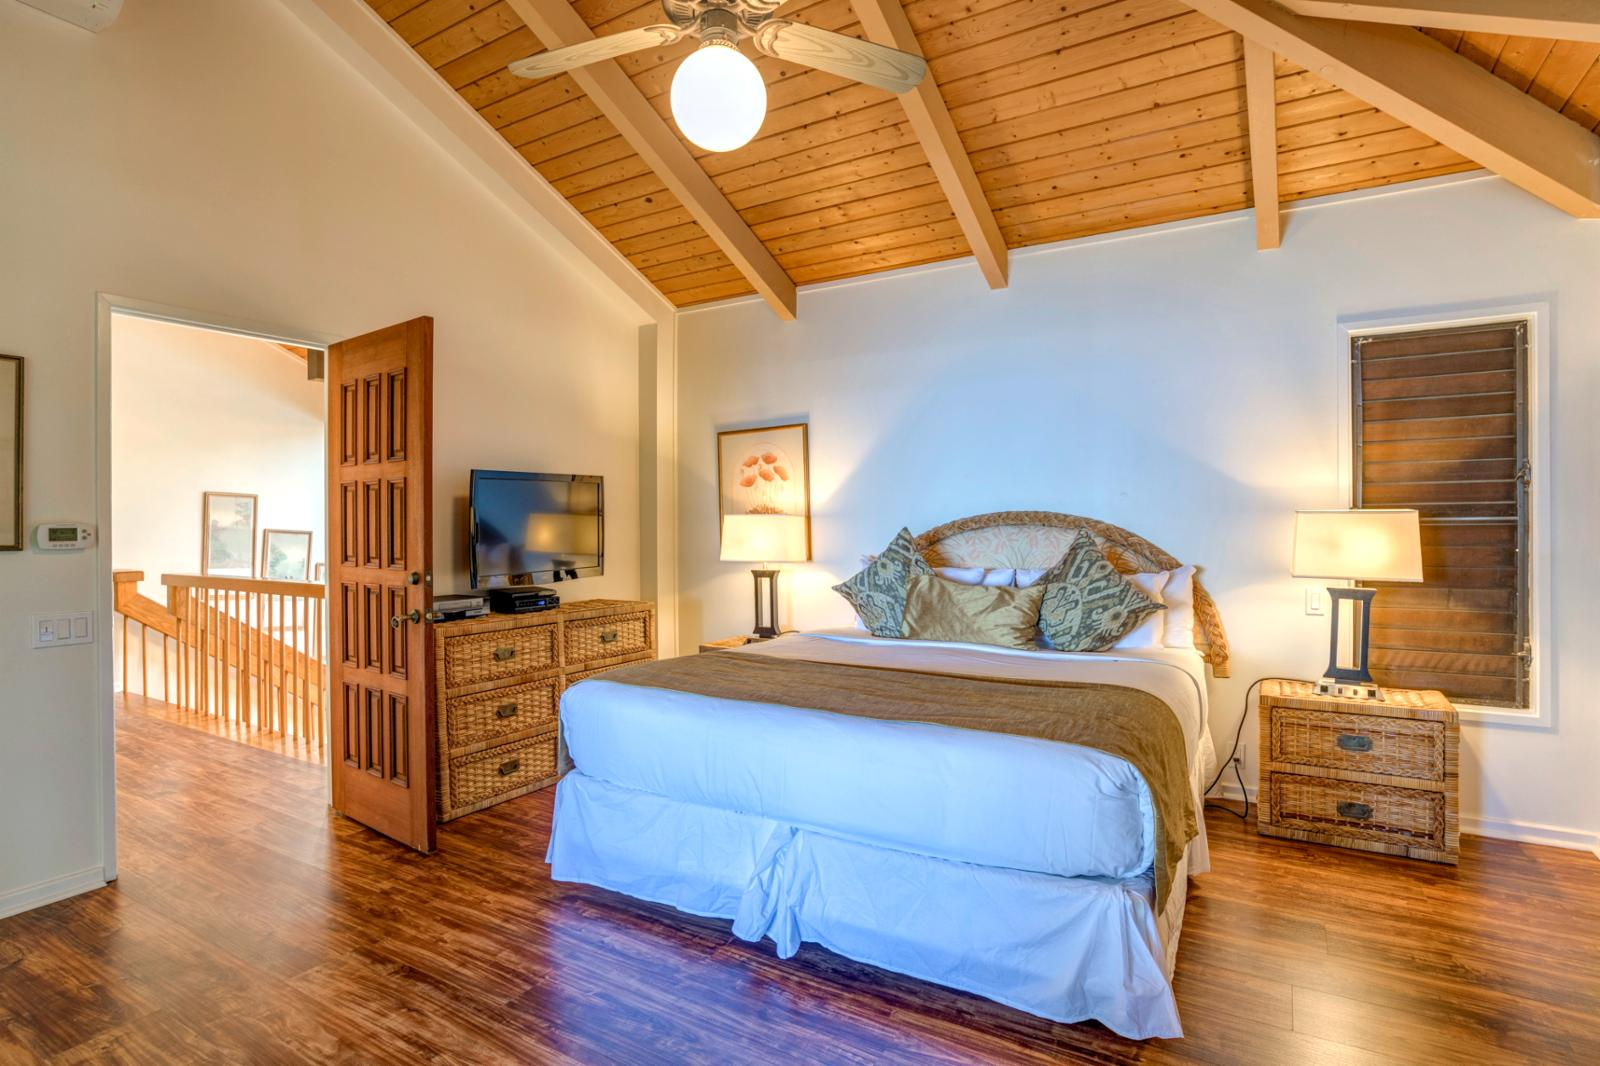 Relax and enjoy the comfortable King sized bed and sweeping aqua marine views